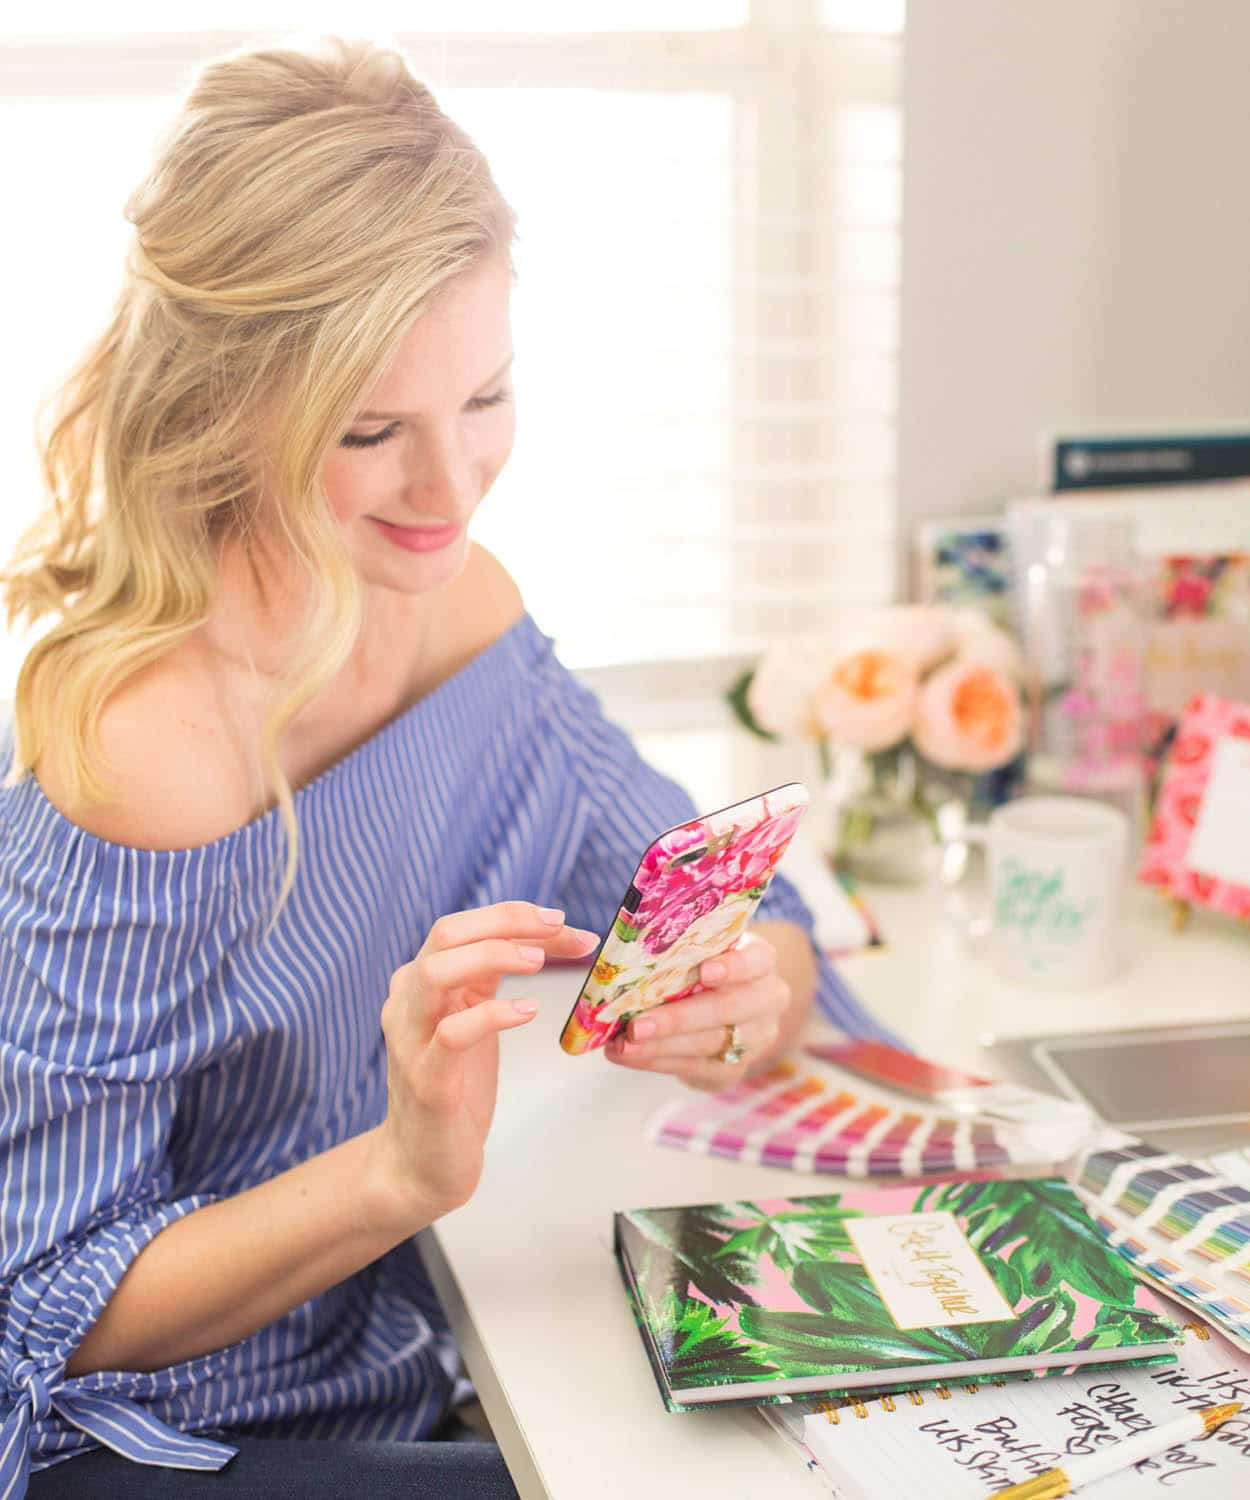 Blogger Ashley Brooke's Top 5 Favorite Instagram Accounts | www.ashleybrookedesigns.com